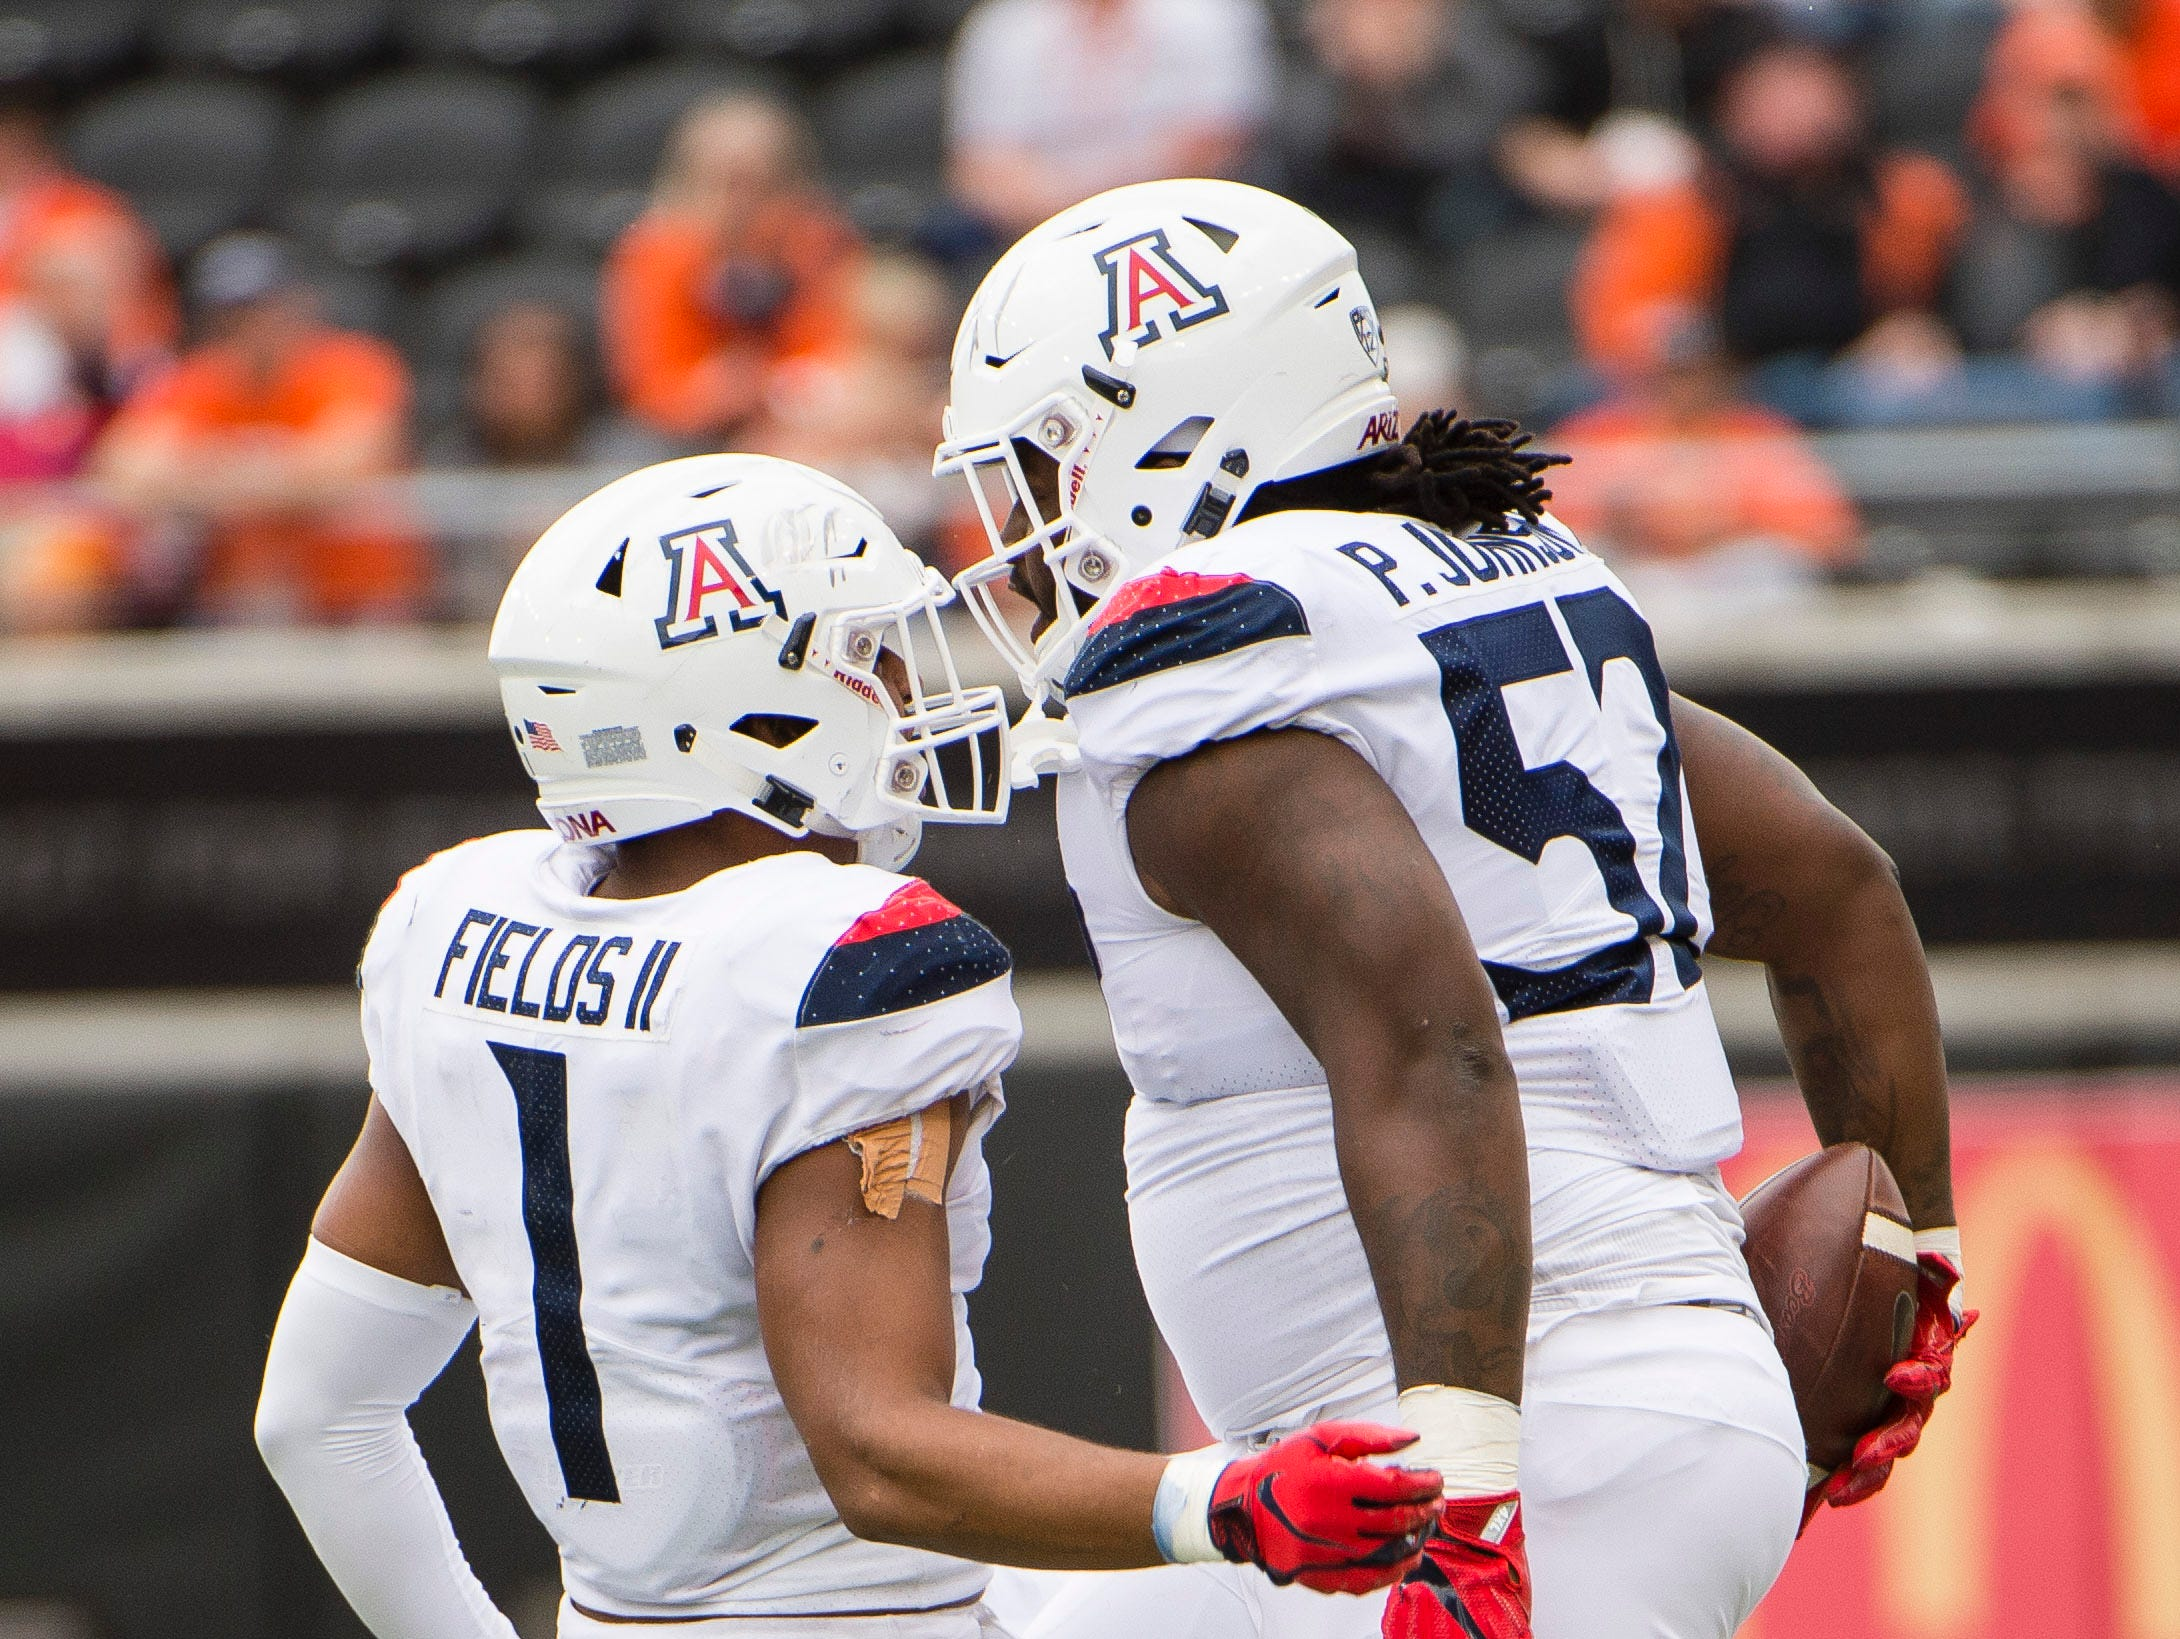 Sep 22, 2018; Corvallis, OR, USA; Arizona Wildcats linebacker Tony Fields II (1) and Arizona Wildcats cornerback Lorenzo Burns (2) celebrate after sacking Oregon State Beavers quarterback Conor Blount (2) during the first half at Reser Stadium.